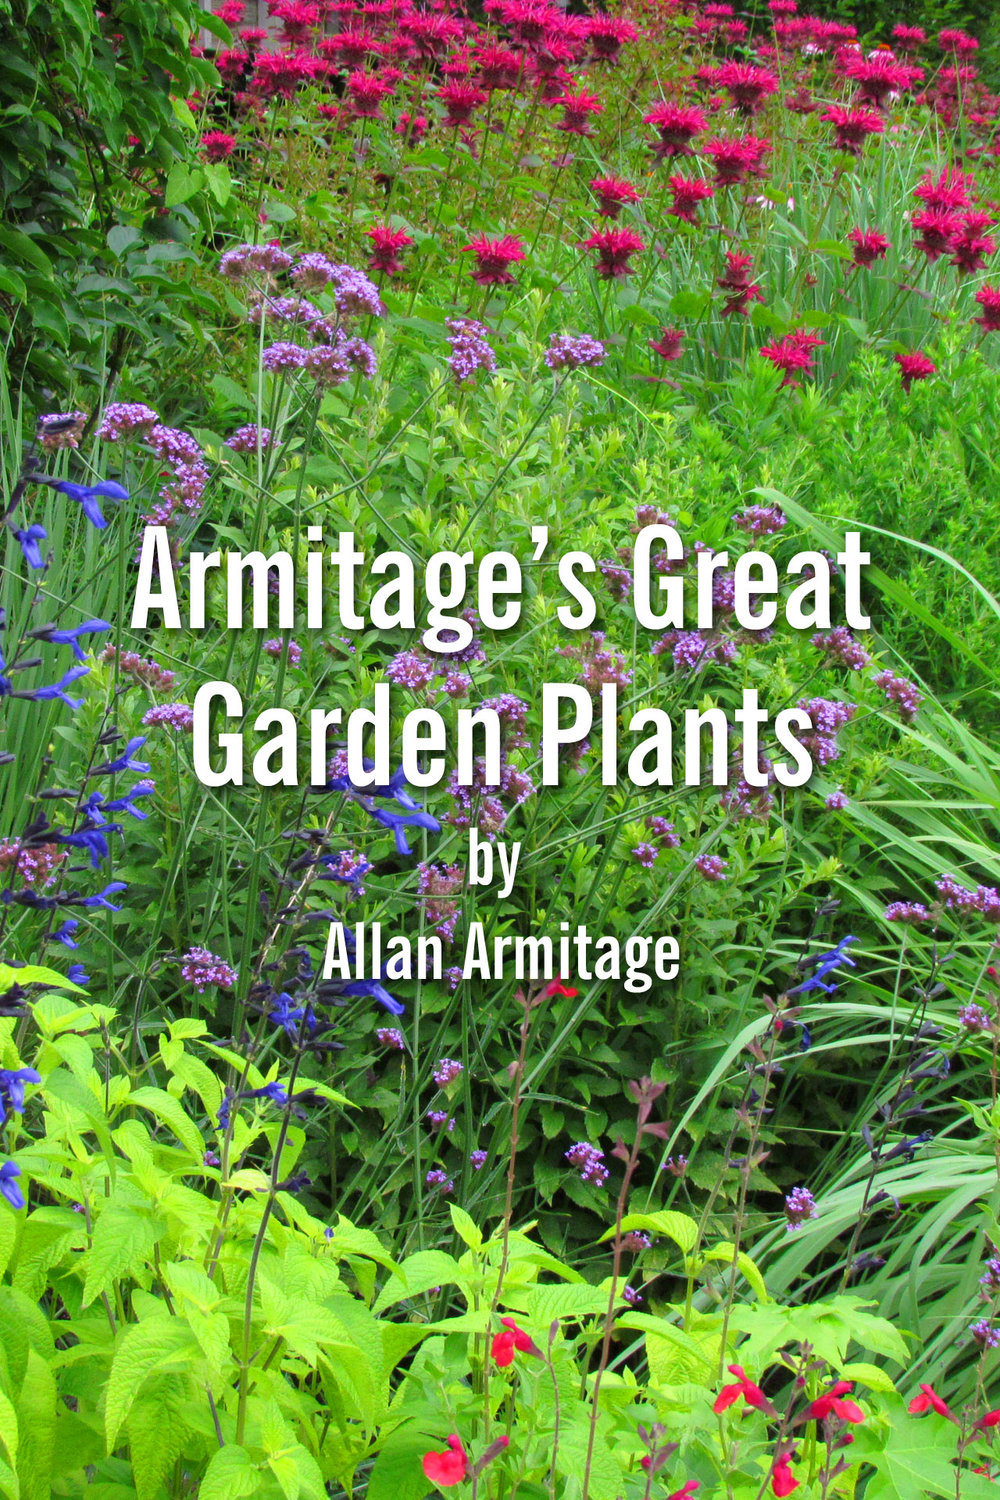 ArmitageGreatGardenPlants.jpg